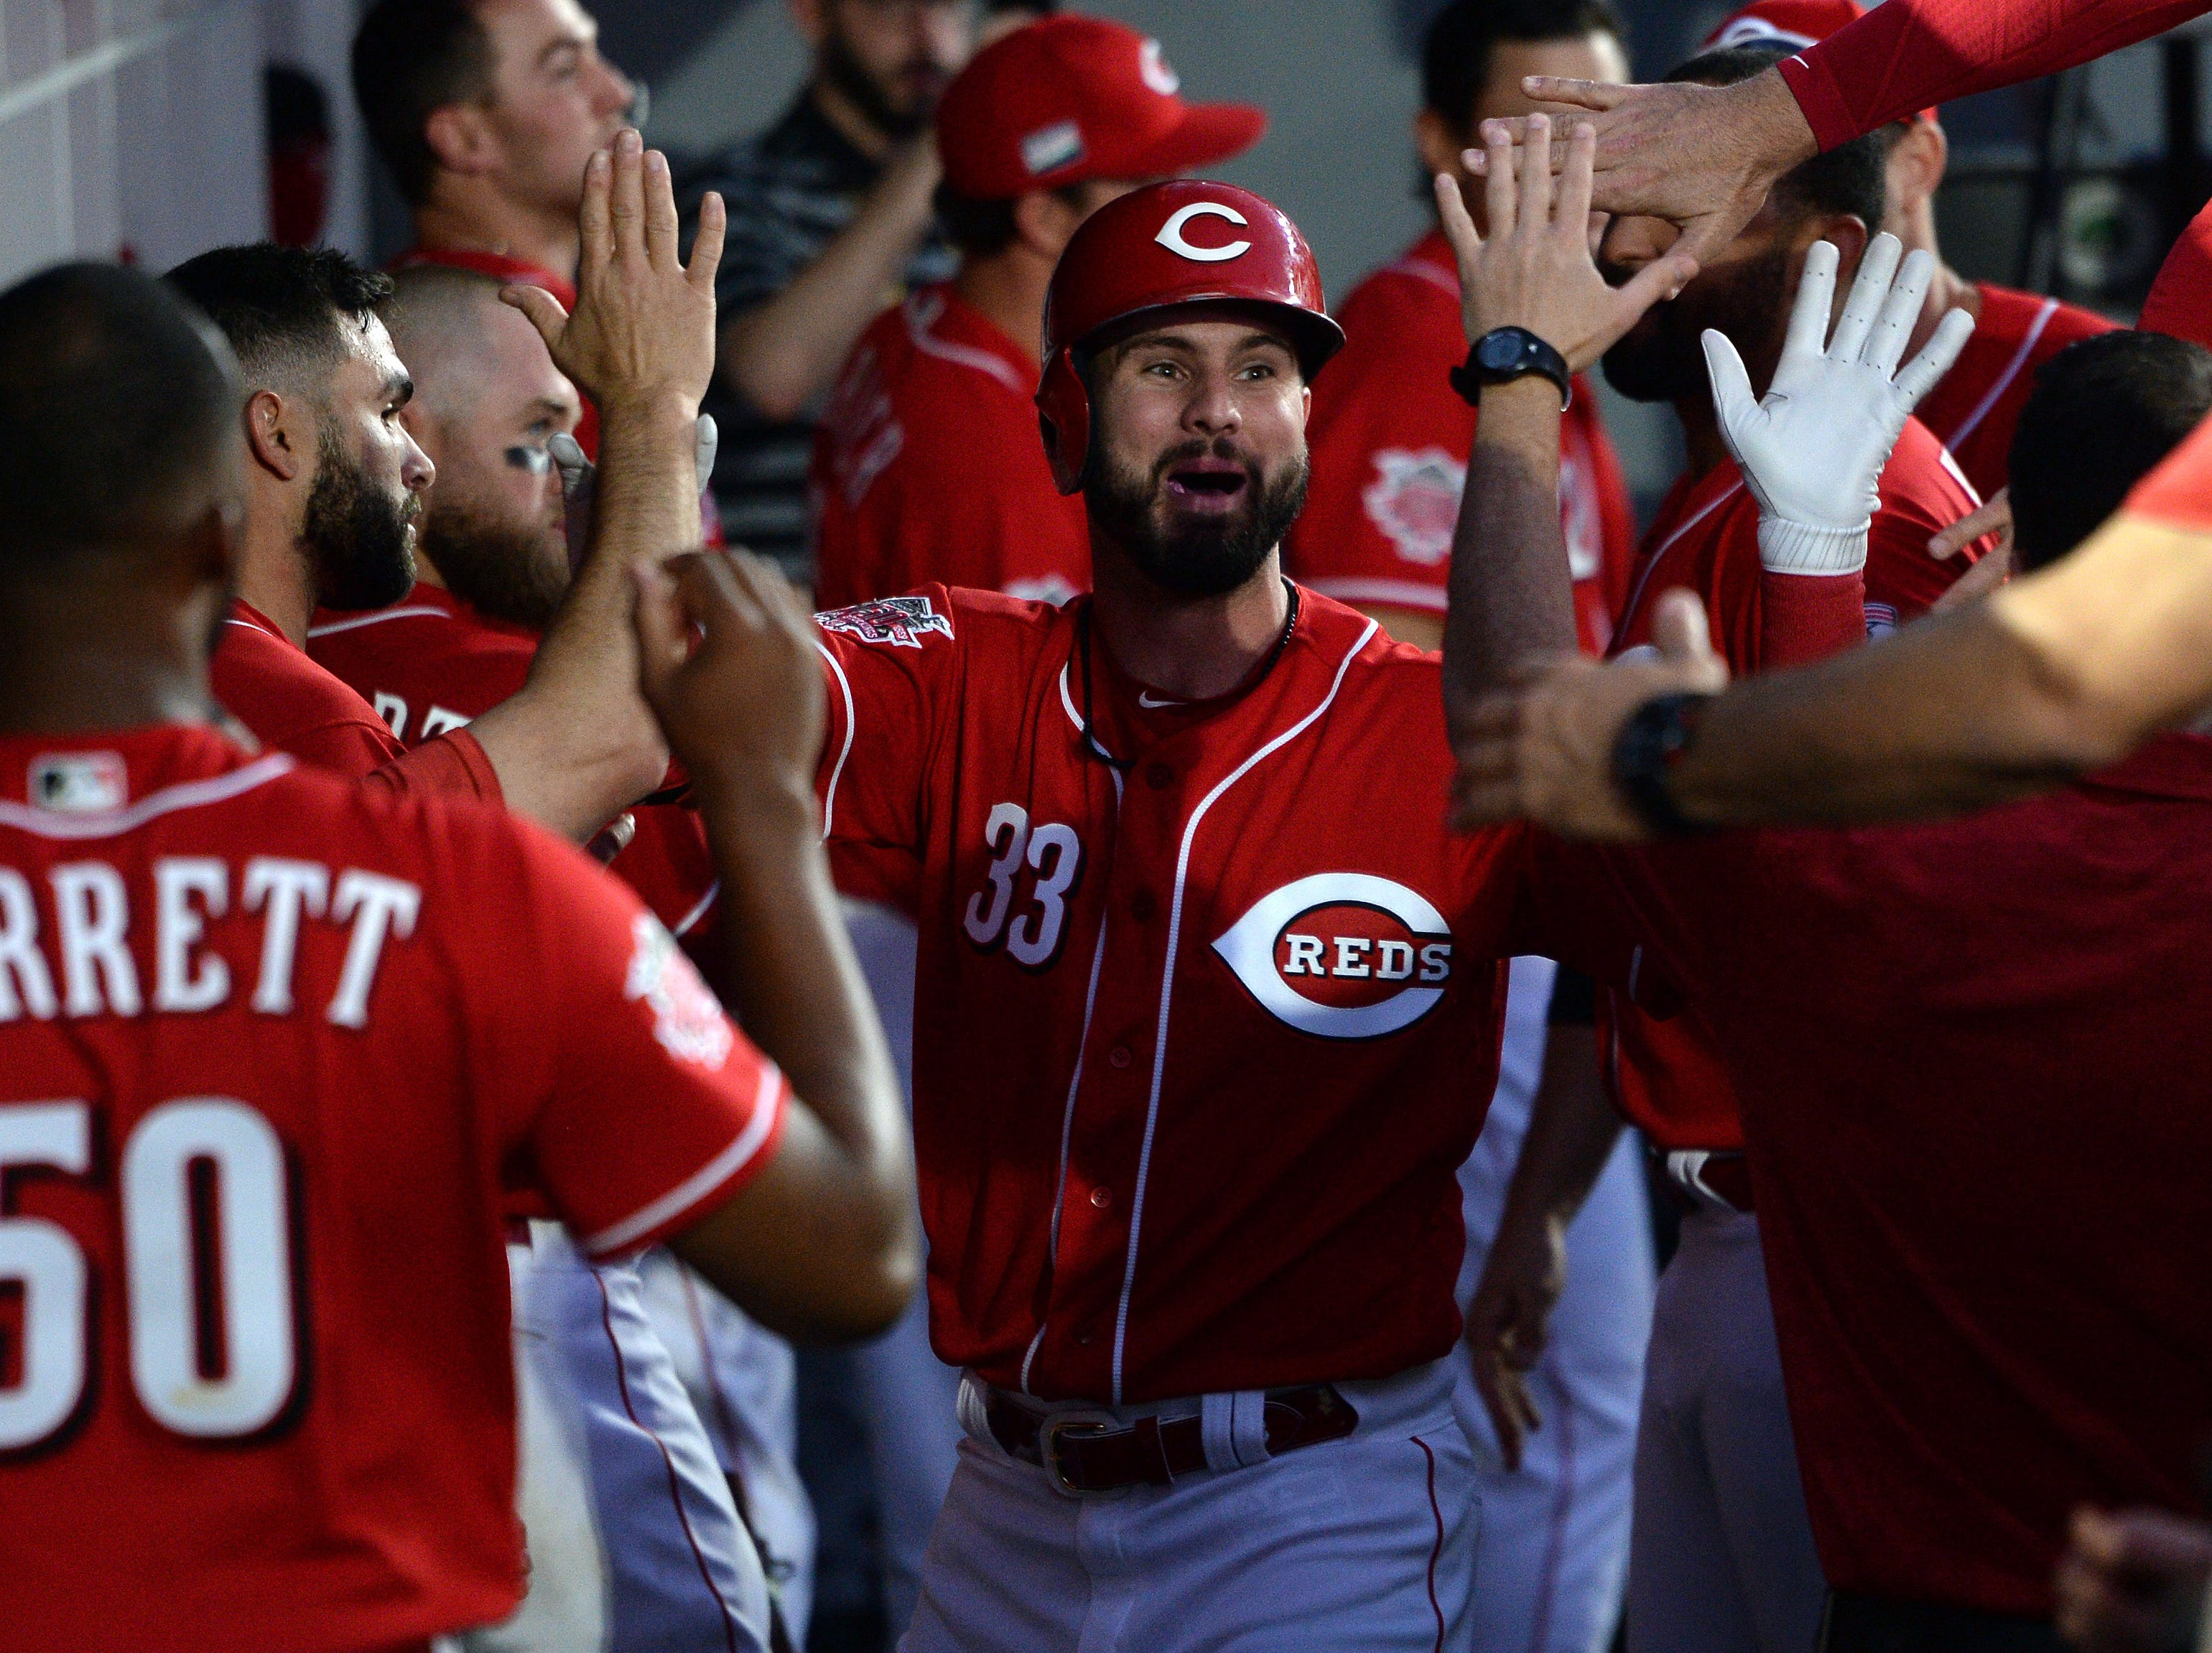 Cincinnati Reds left fielder Jesse Winker (33) is congratulated in the dugout after hitting a home run during the sixth inning against the St. Louis Cardinals at Estadio de Beisbol Monterrey.